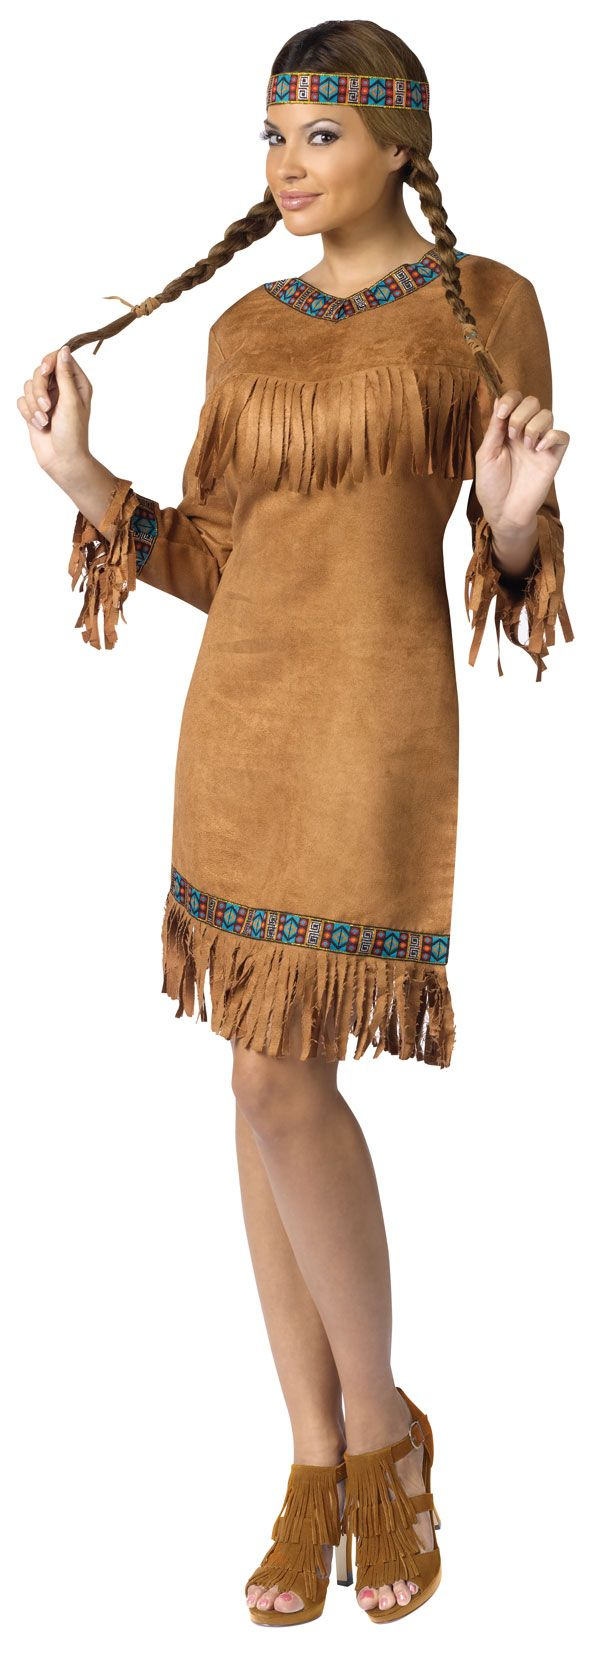 I take issue with the cultural appropriation involved in Native American 'costumes' but am pinning this because I love those shoes.